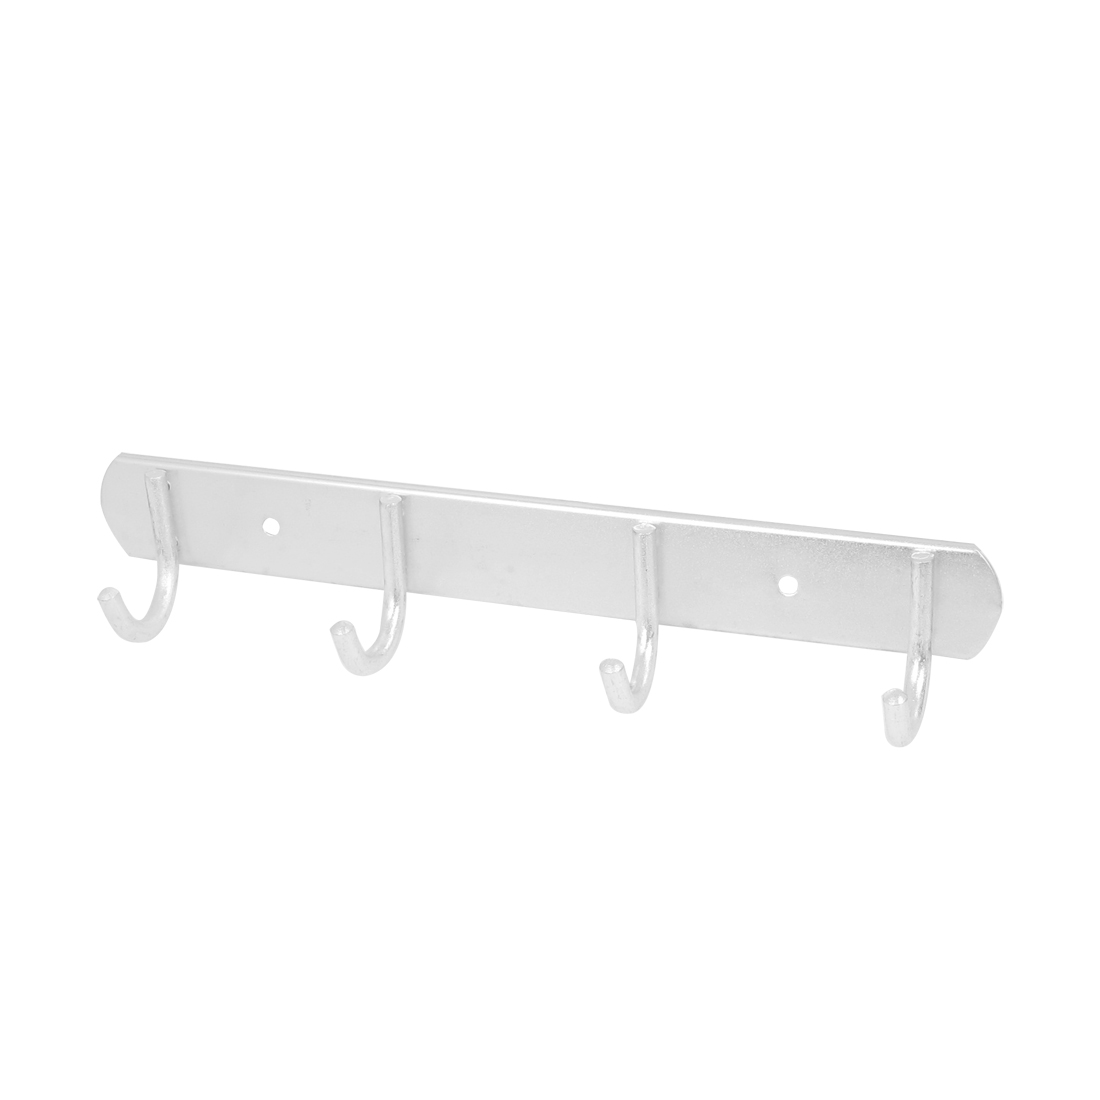 Aluminum 4-Hook Wall-Mount Rack Silver Tone 27cm Long